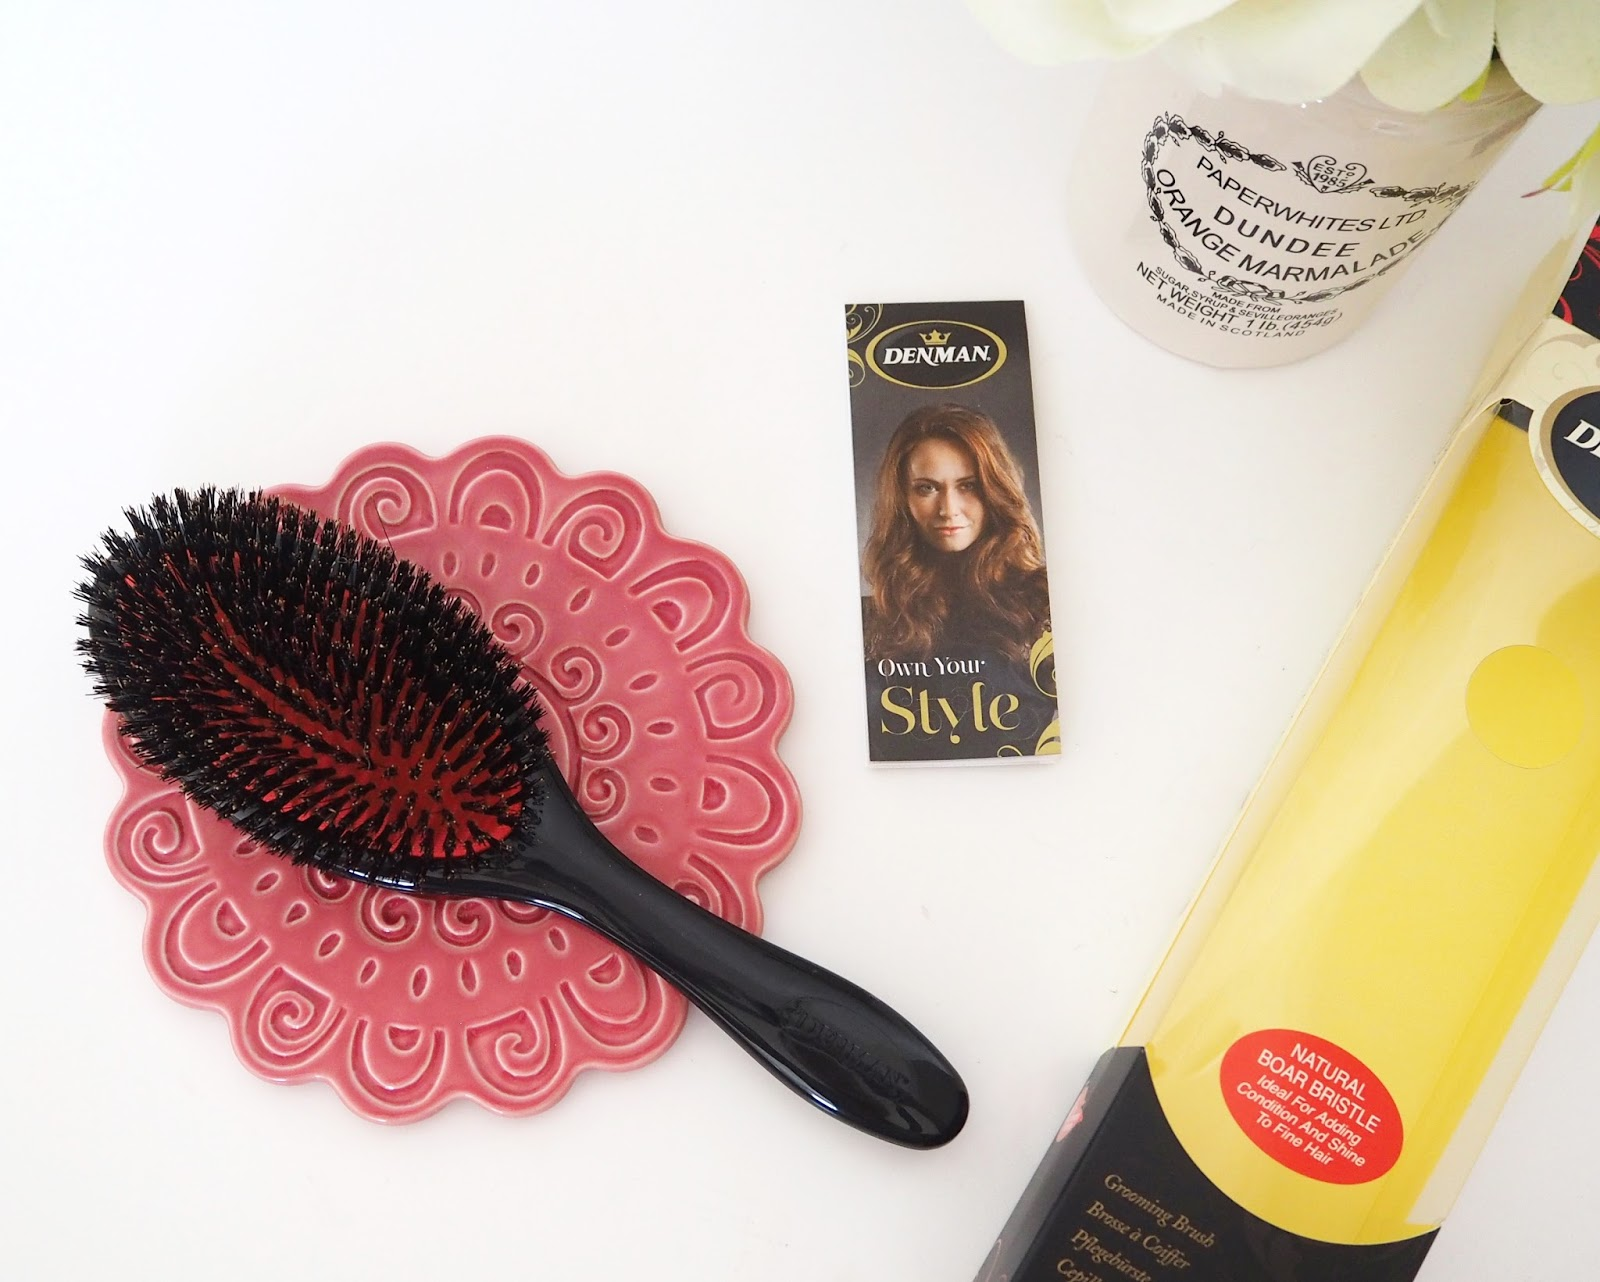 Denman Boar Bristle Hairbrush, Beauty Review, Haircare, Katie Kirk Loves